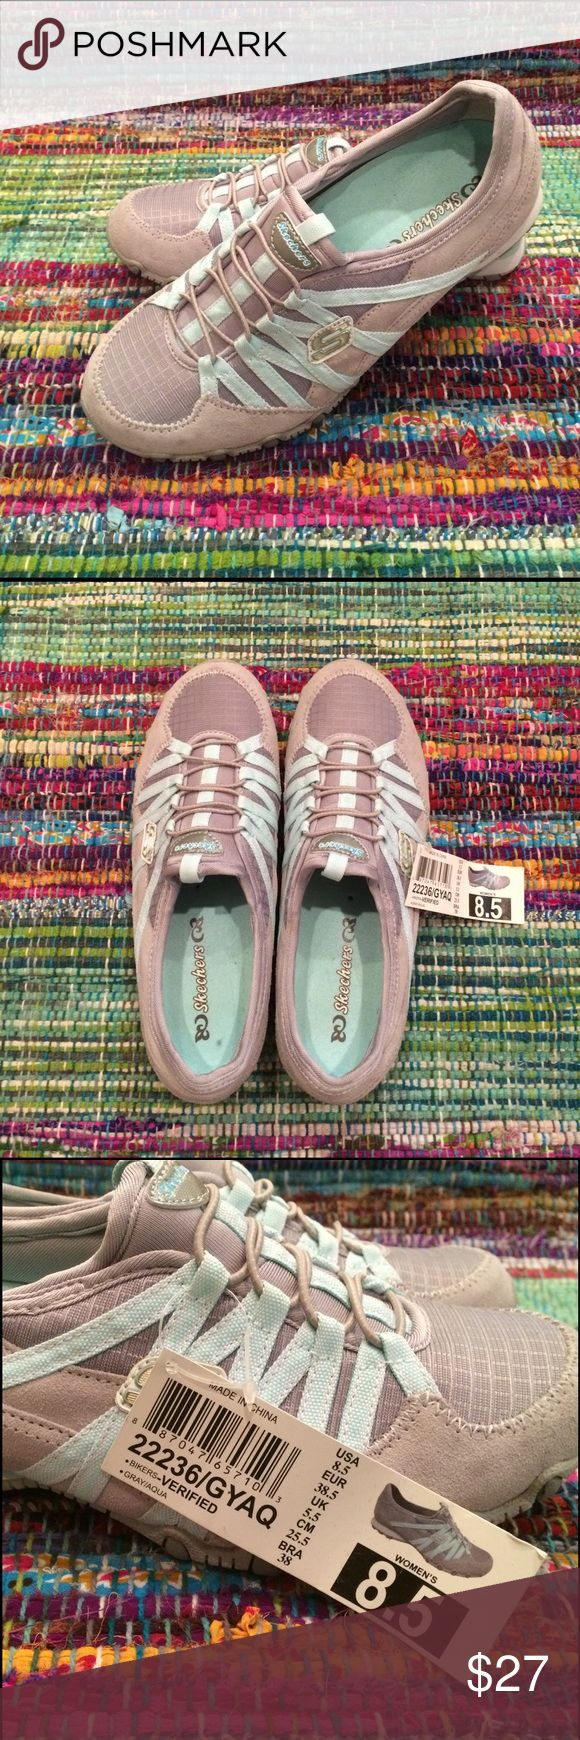 """Skechers sporty shoe size 8.5 Adorable, very sporty lightweight Skechers """"Bikers"""" shoe.  Brand new with tags.  Gray with baby blue/aqua detailing.  Nylon and soft plush suede. Nice arch support.  Very cute. Skechers Shoes Sneakers"""